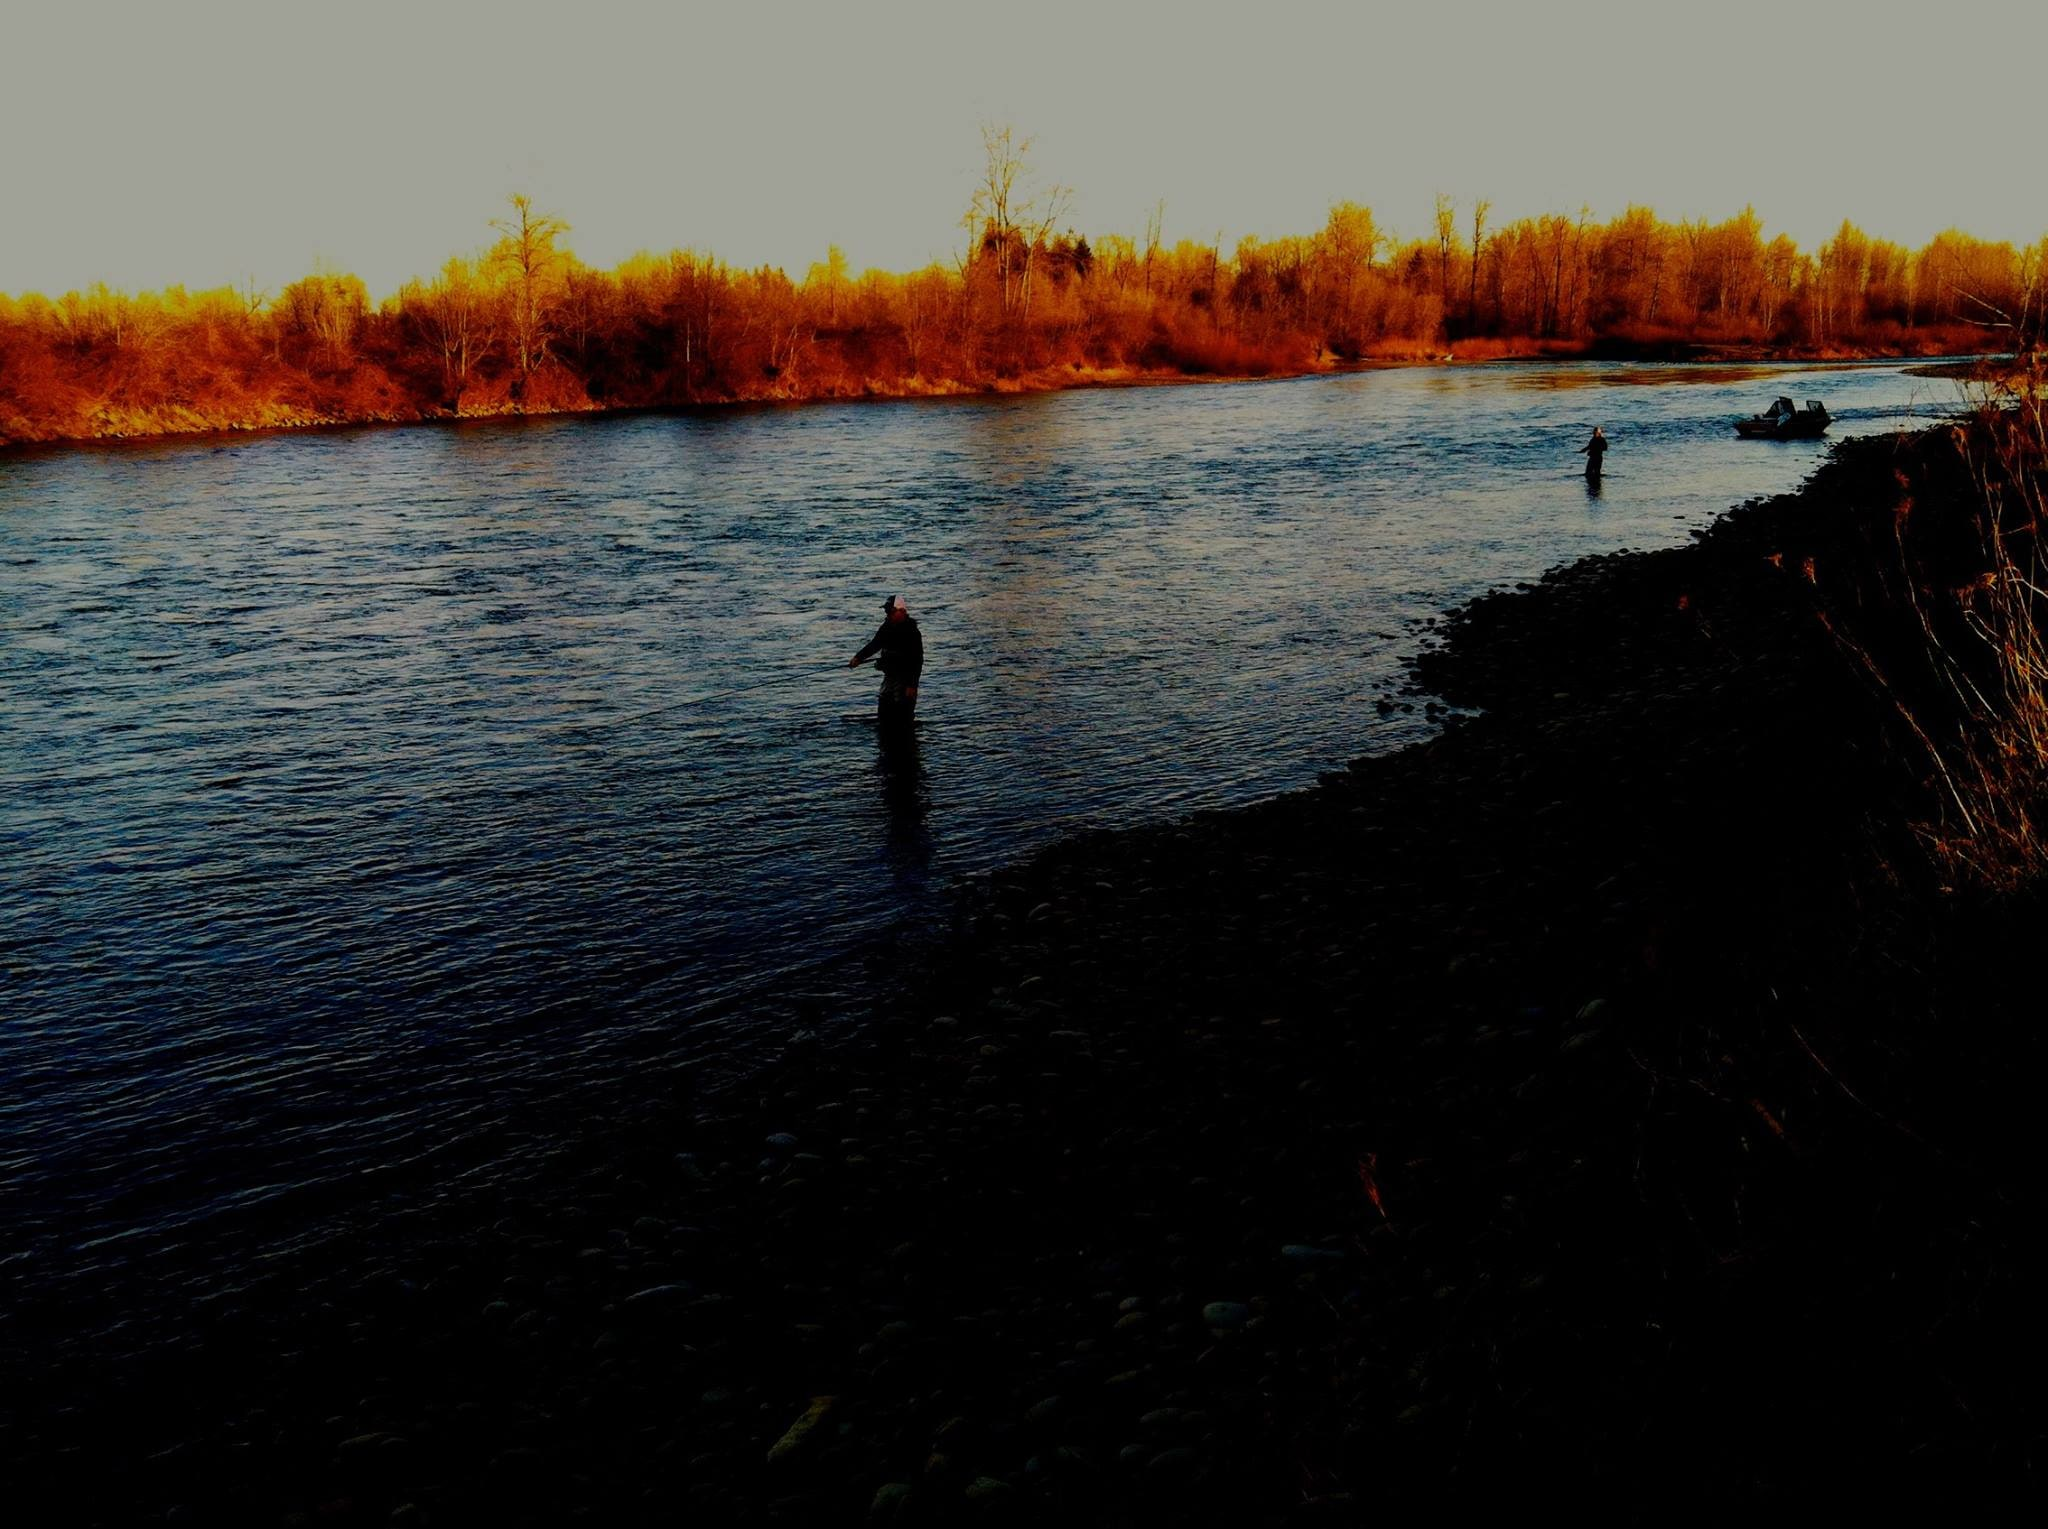 Hammer Down Guide Service: River Fishing - Half Day